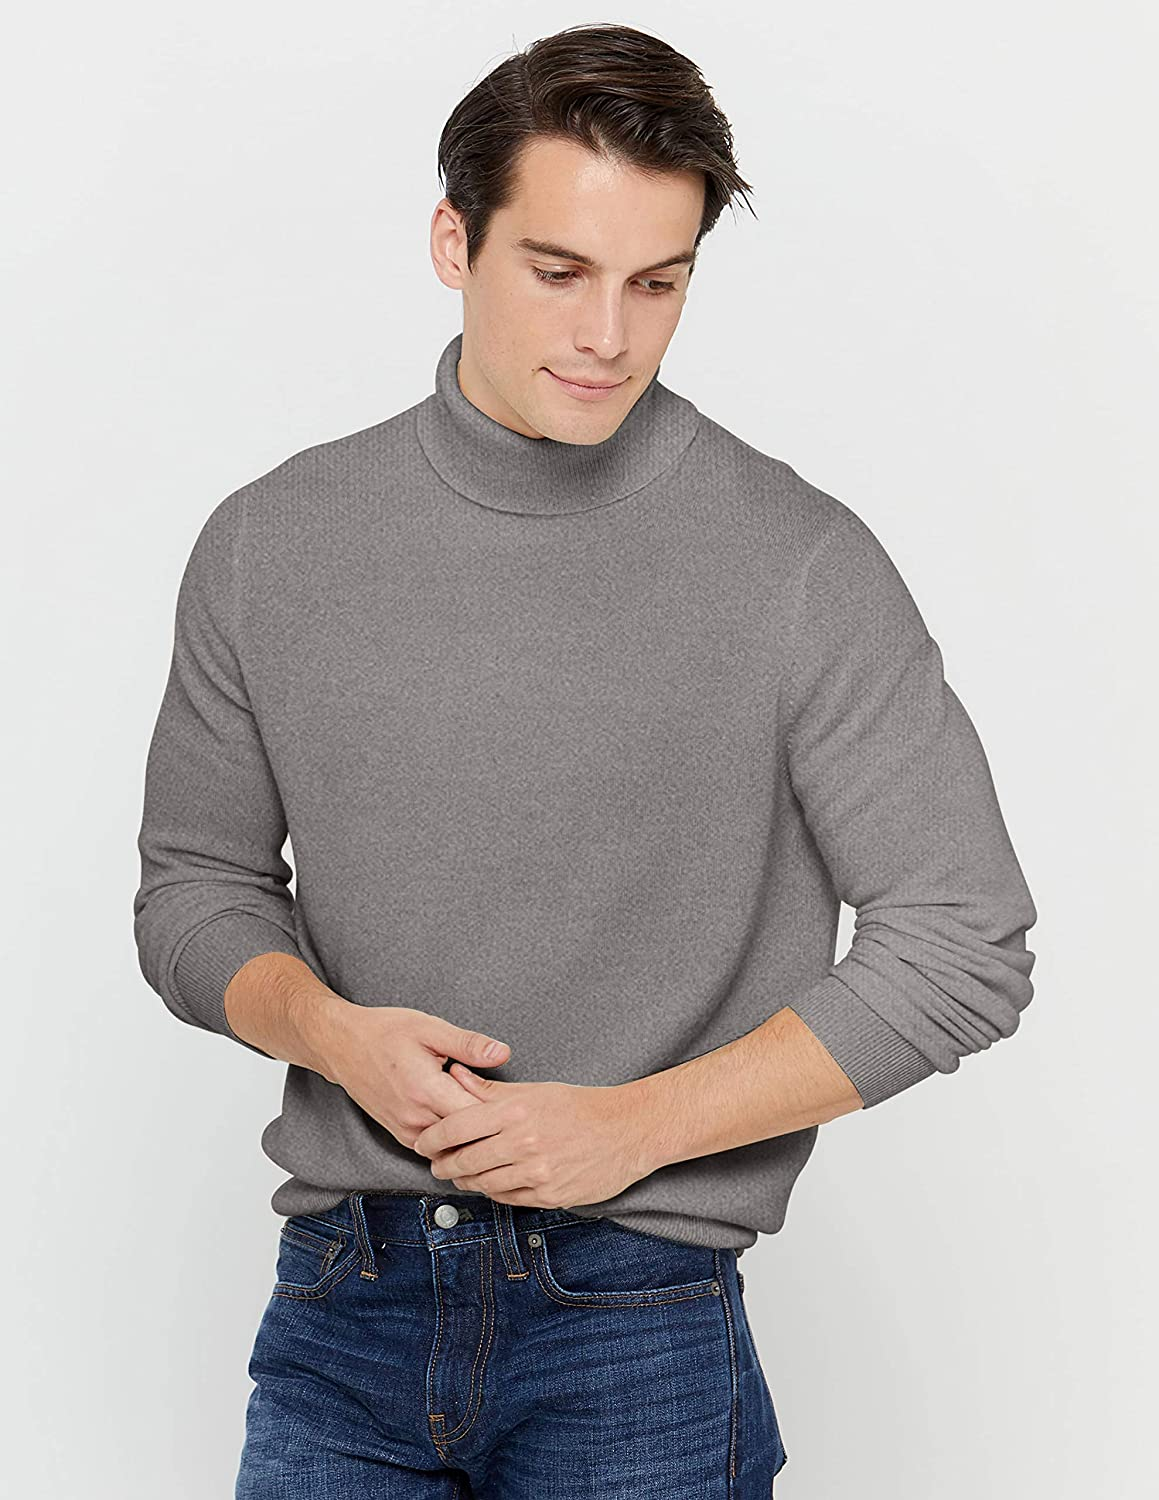 State cashmere men's turtleneck sweater, 100% pure cashmere